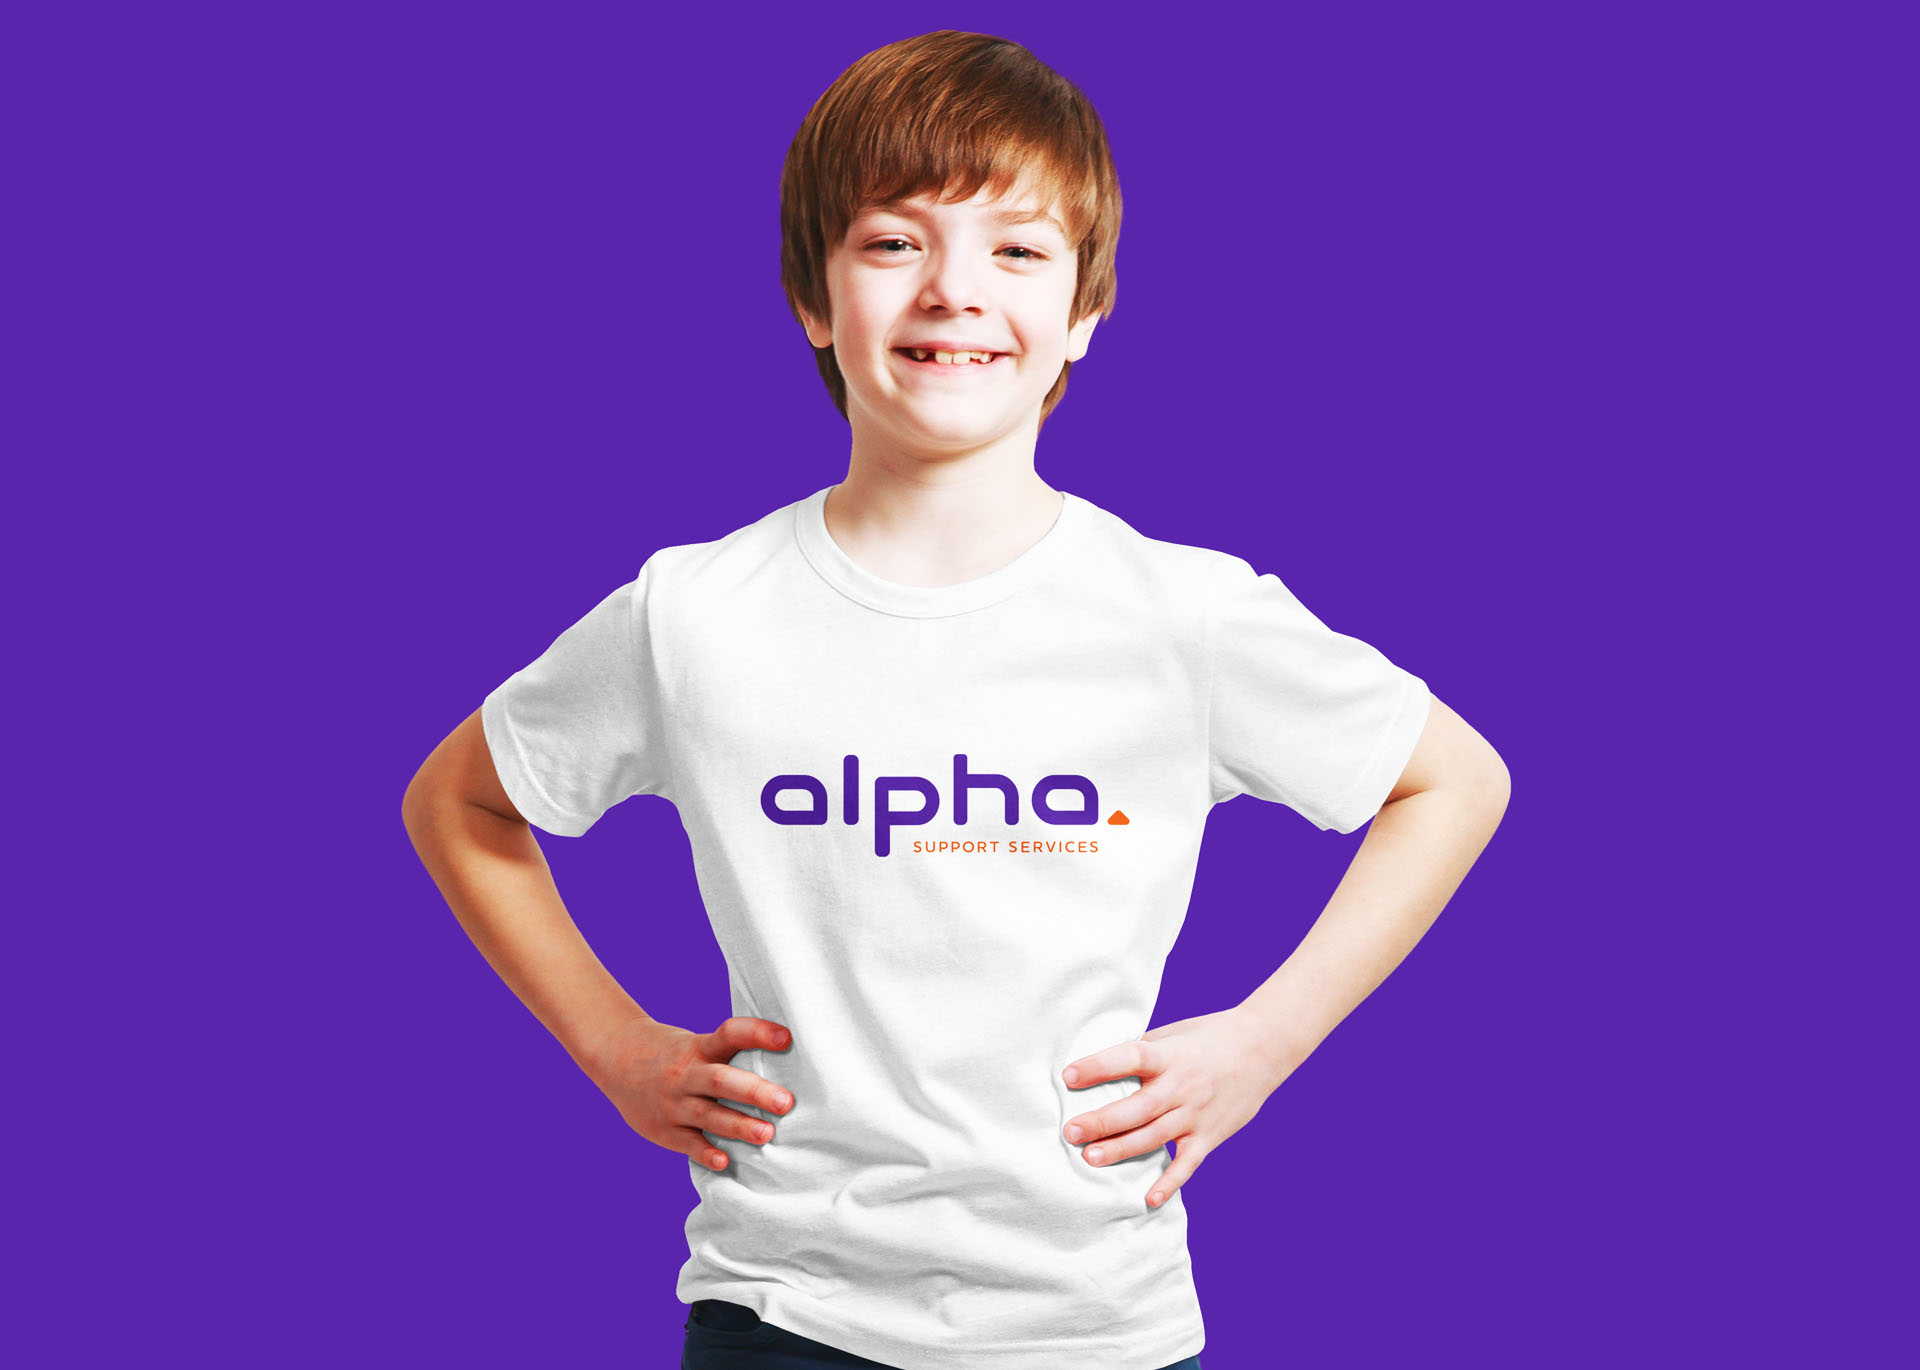 Alpha Support Services